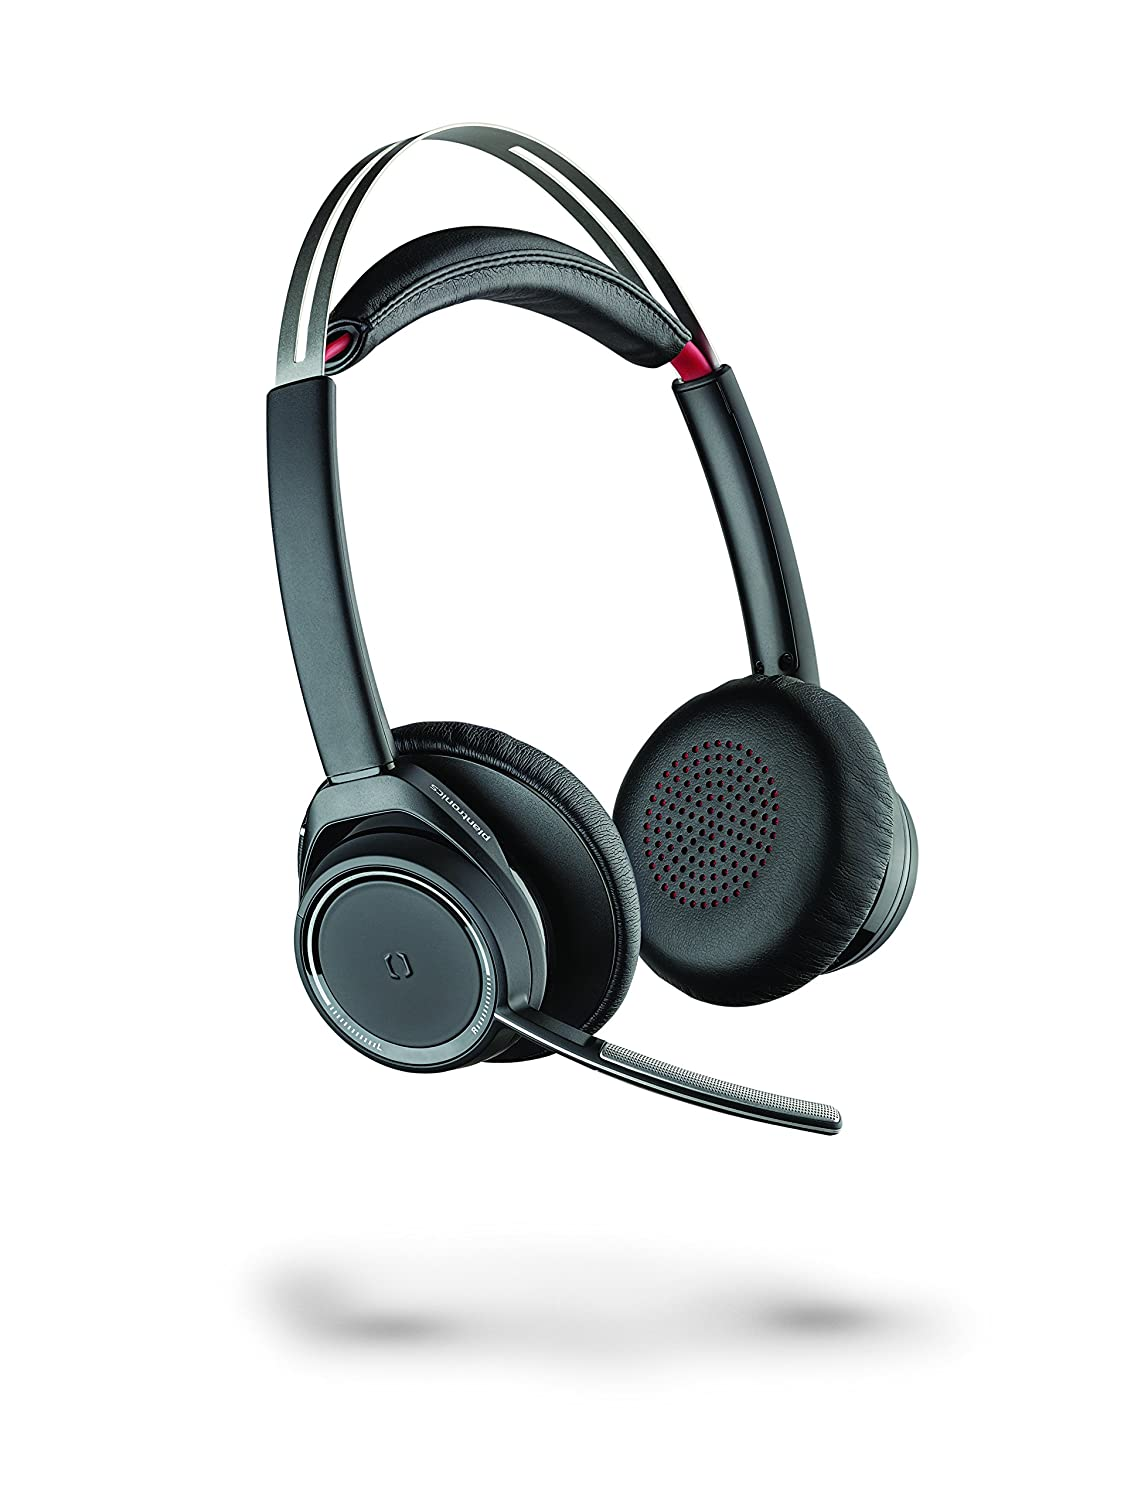 fba08f41212 Amazon.com: Plantronics Voyager Focus UC Bluetooth USB B825 202652-01  Headset with Active Noise Cancelling: Cell Phones & Accessories